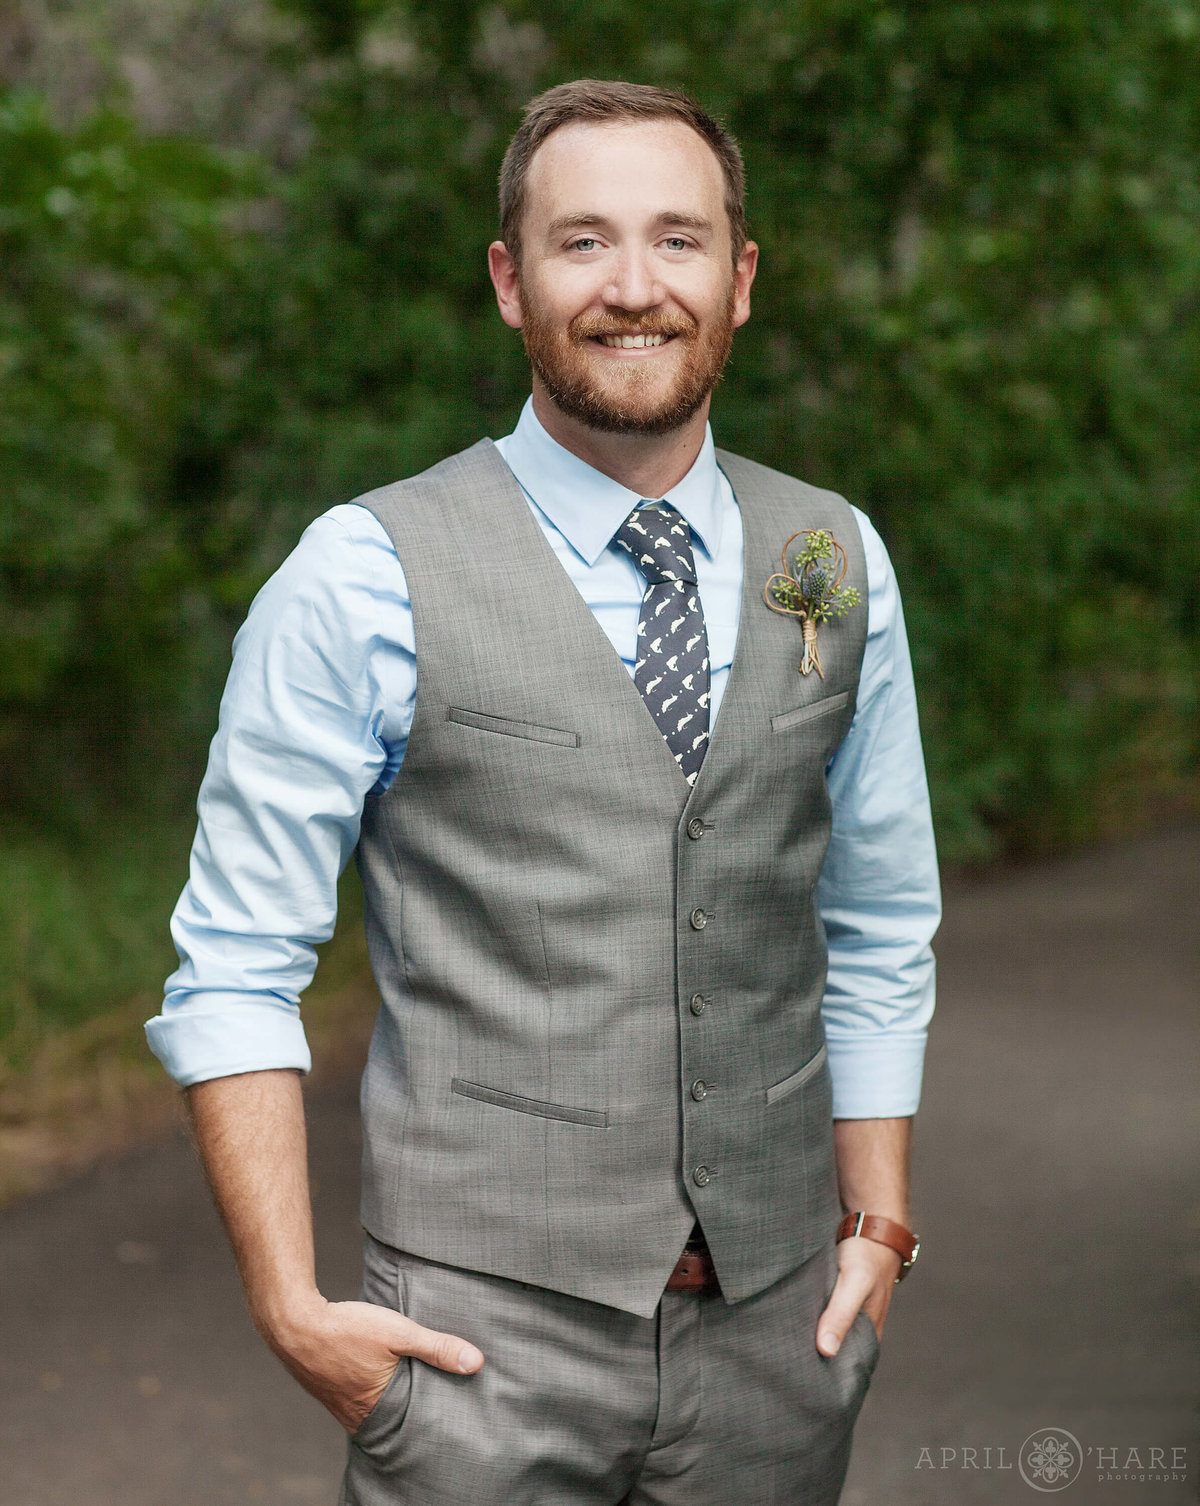 Denver Wedding Photographer Groom Portrait at Denver Botanic Gardens Chatfield Farms